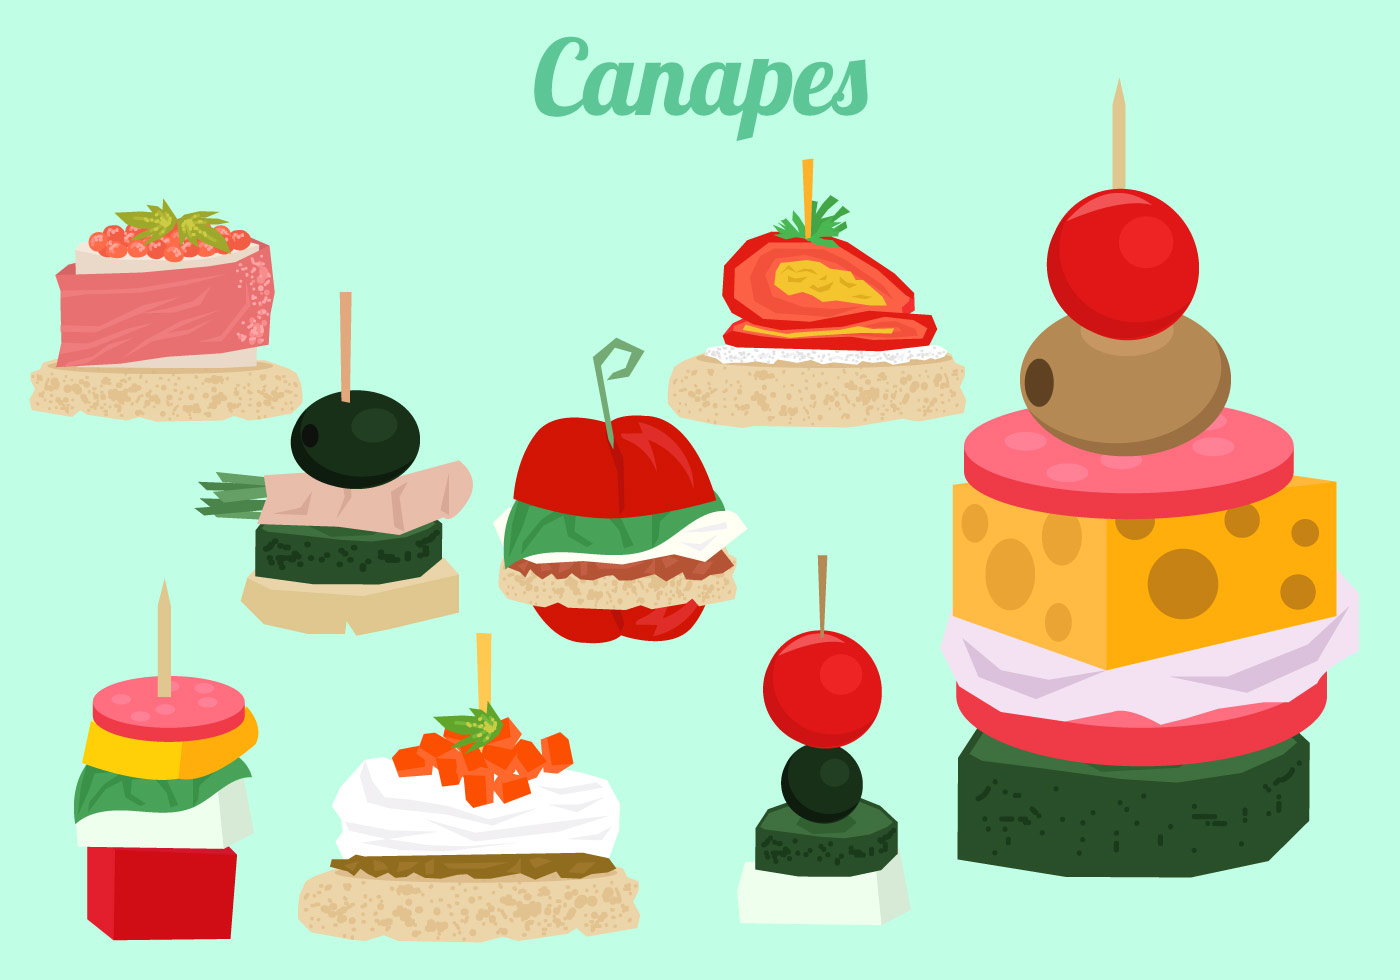 Cenapes buffet download free vector art stock graphics for Canape vector download